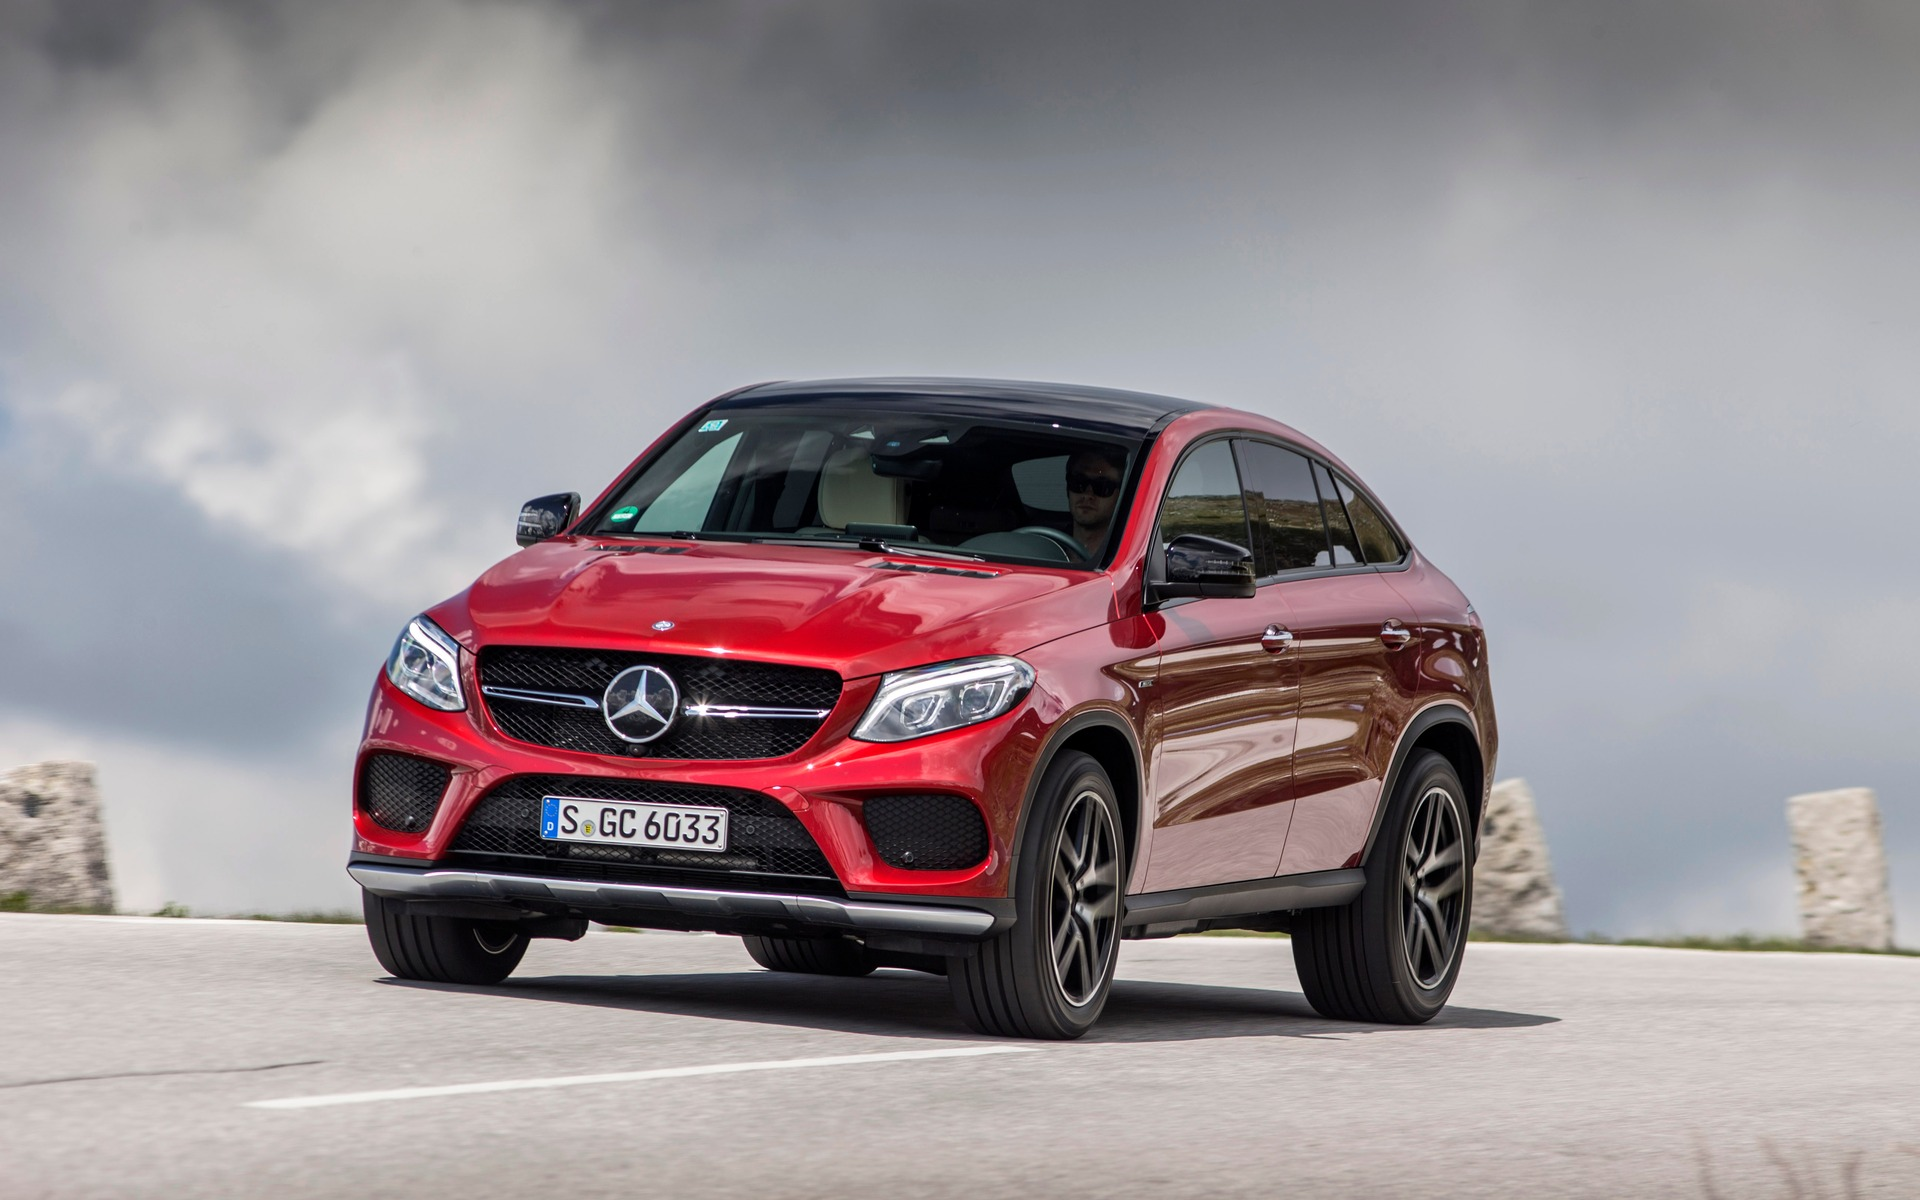 2016 mercedes benz gle class 350d 4matic specifications. Black Bedroom Furniture Sets. Home Design Ideas